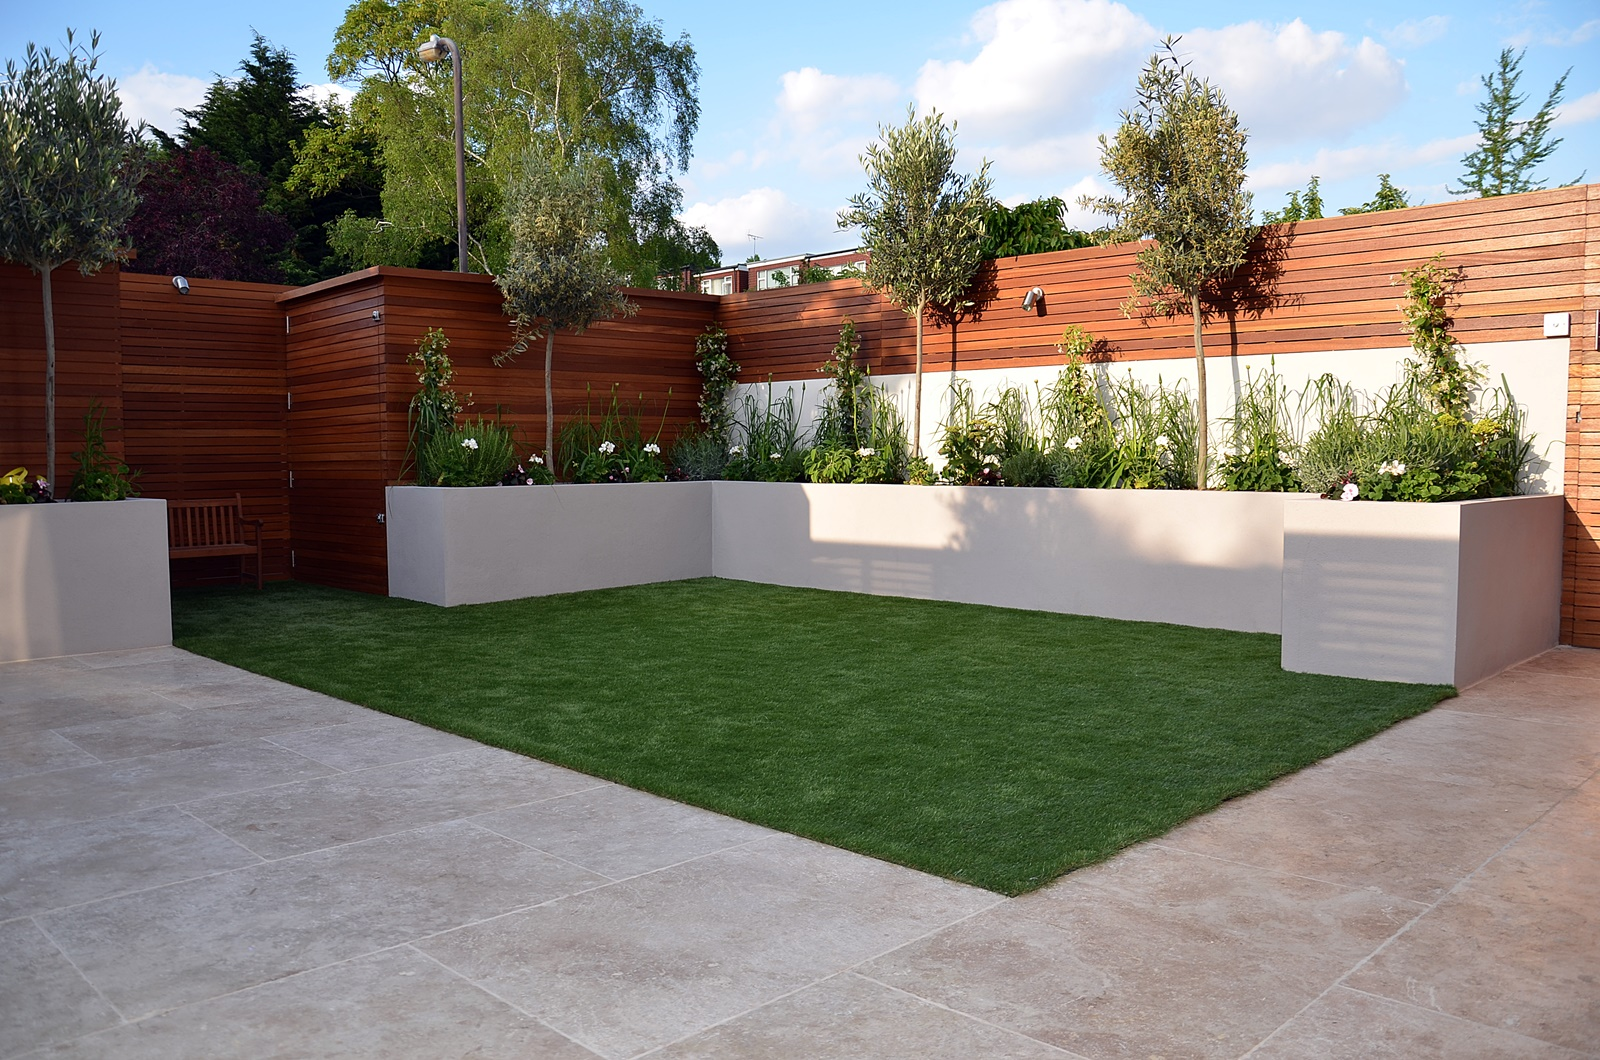 Modern garden design fulham chelsea clapham battersea for Garden design pictures